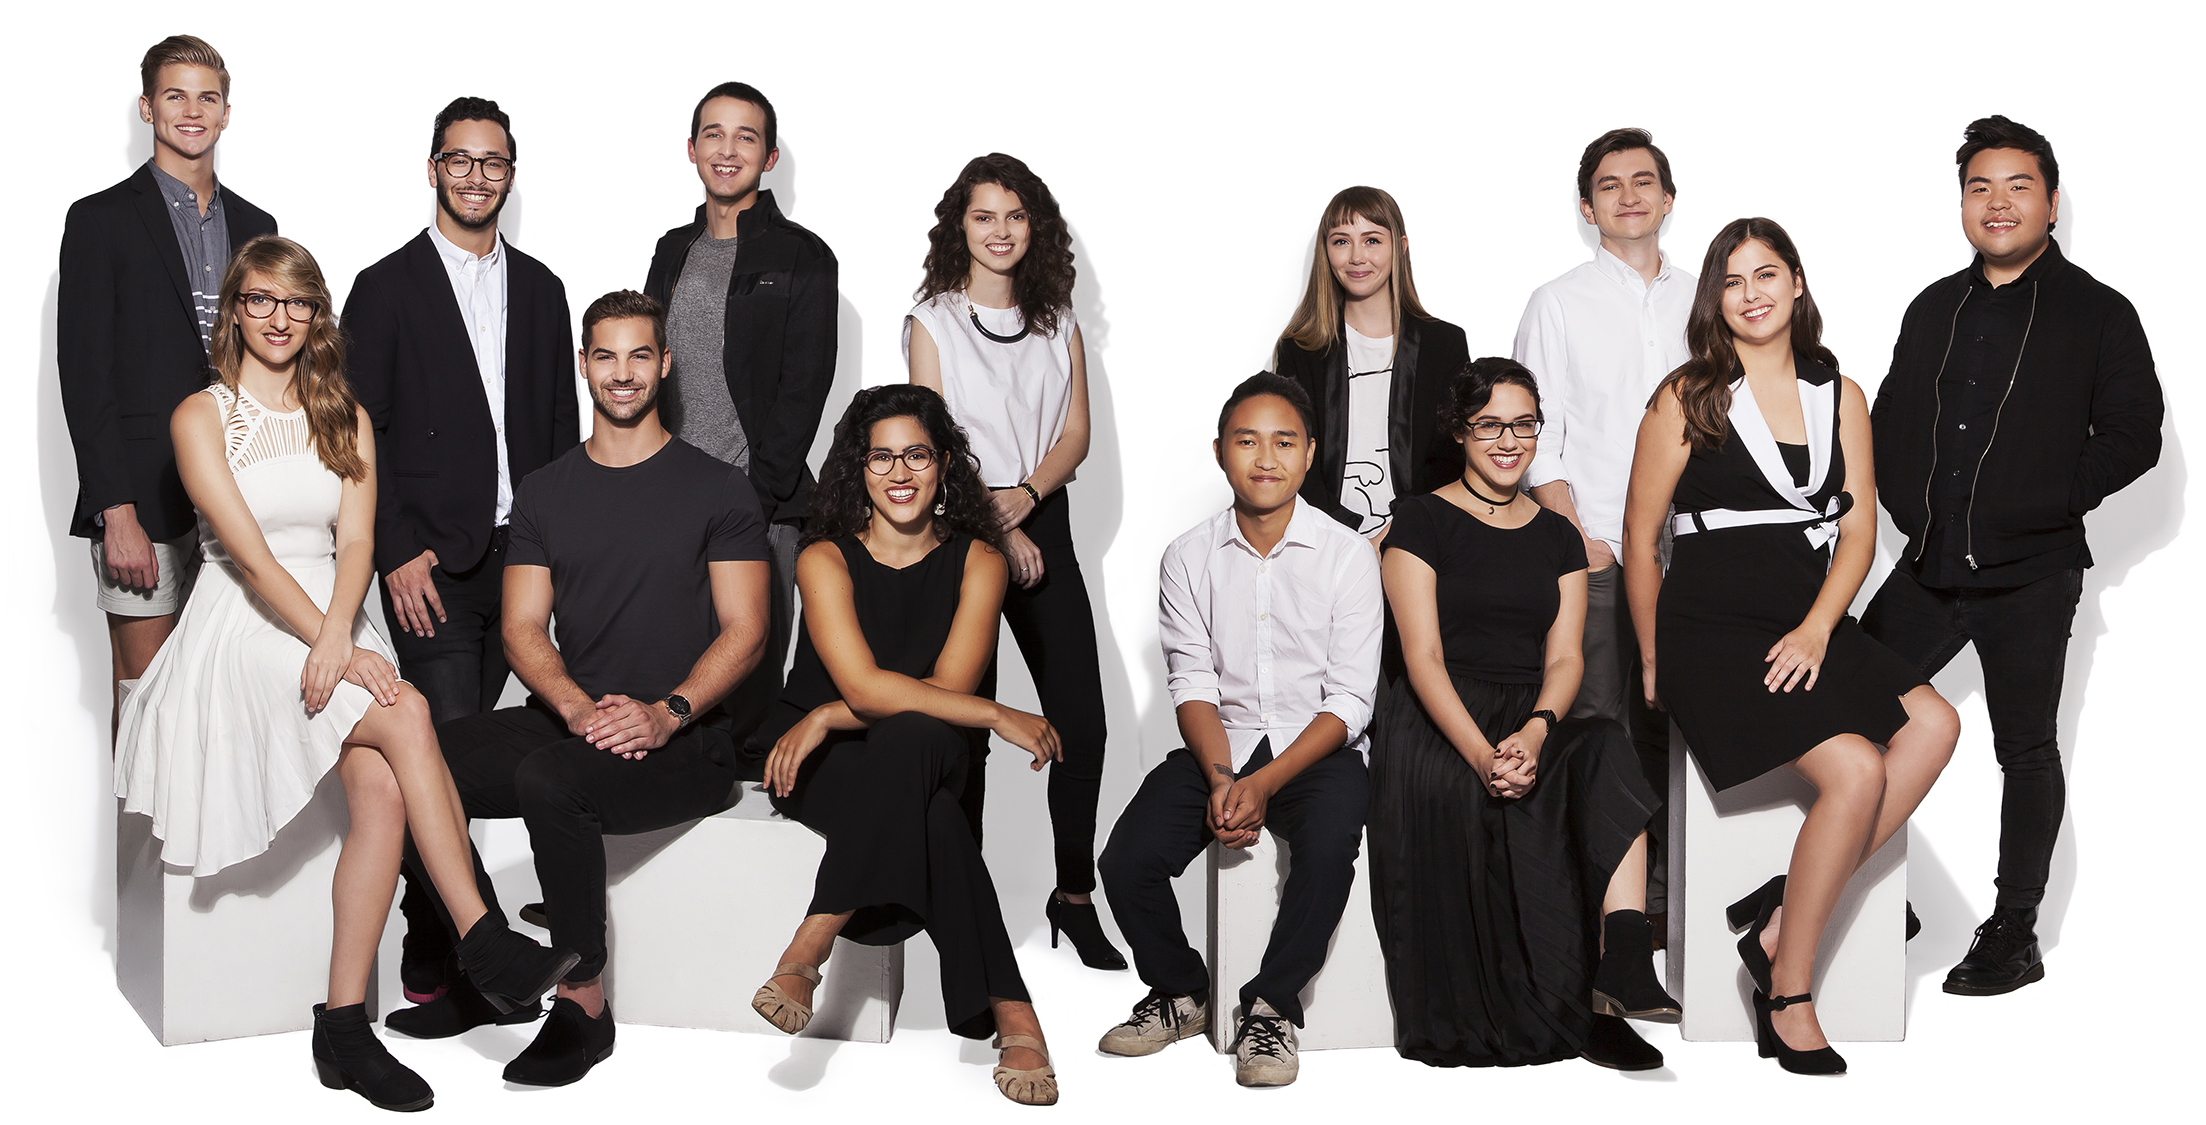 Ringling College 2016 Trustee Scholars Group Photo by Matthew Holler